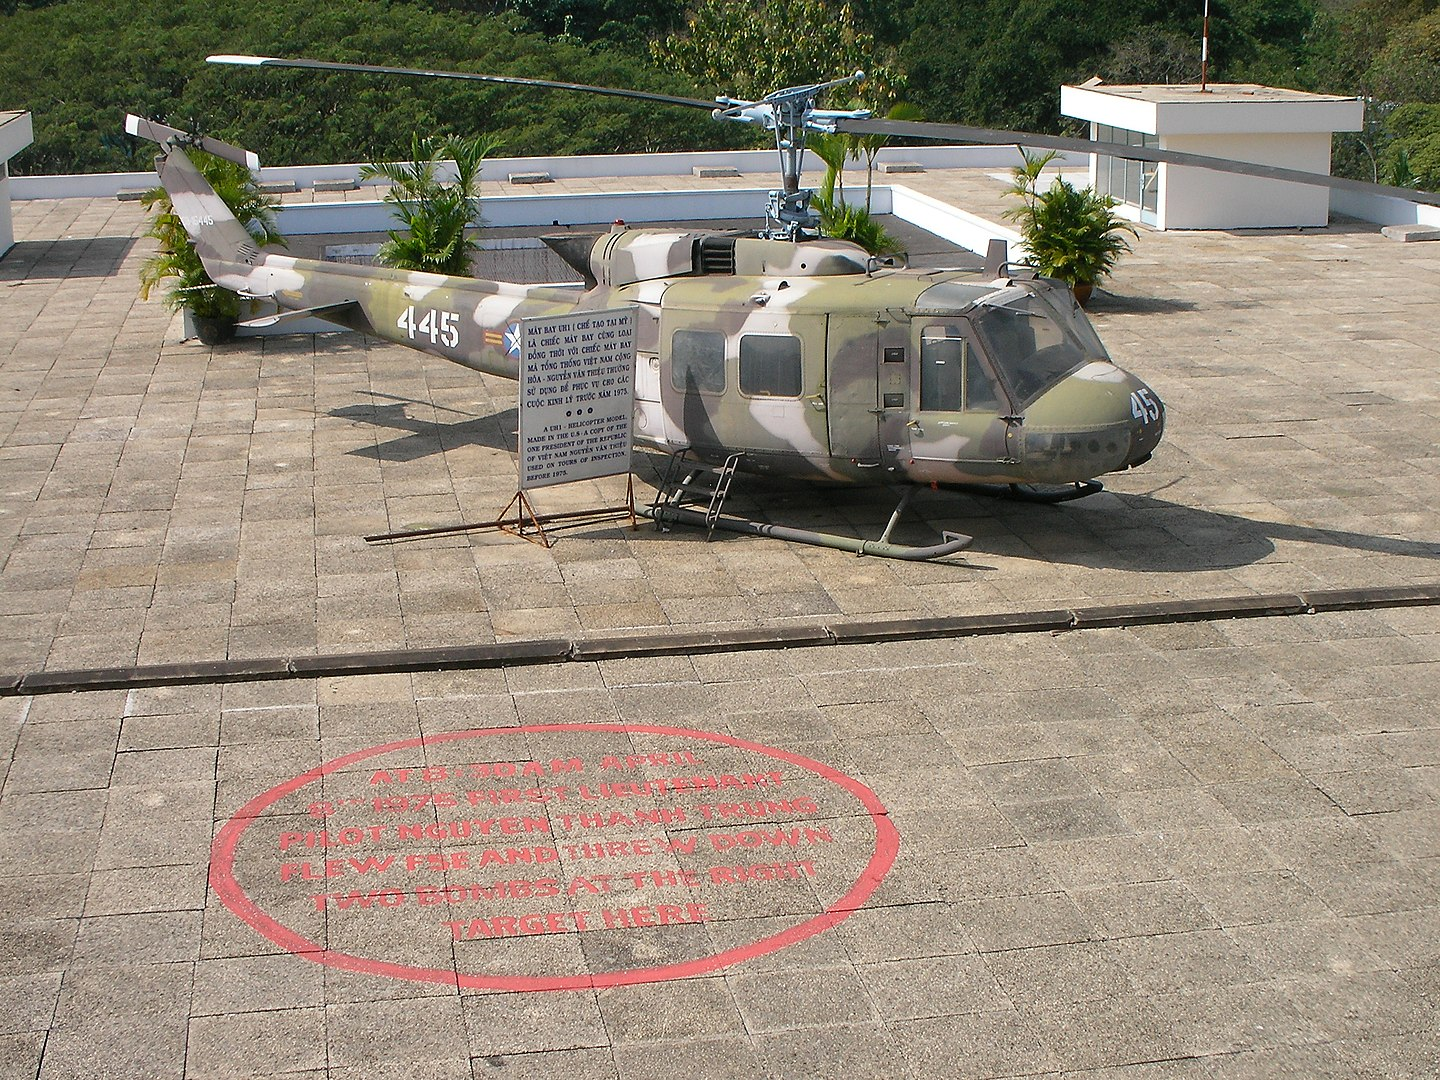 Image of helicopter on the roof at the reunification hall in saigon, vietnam